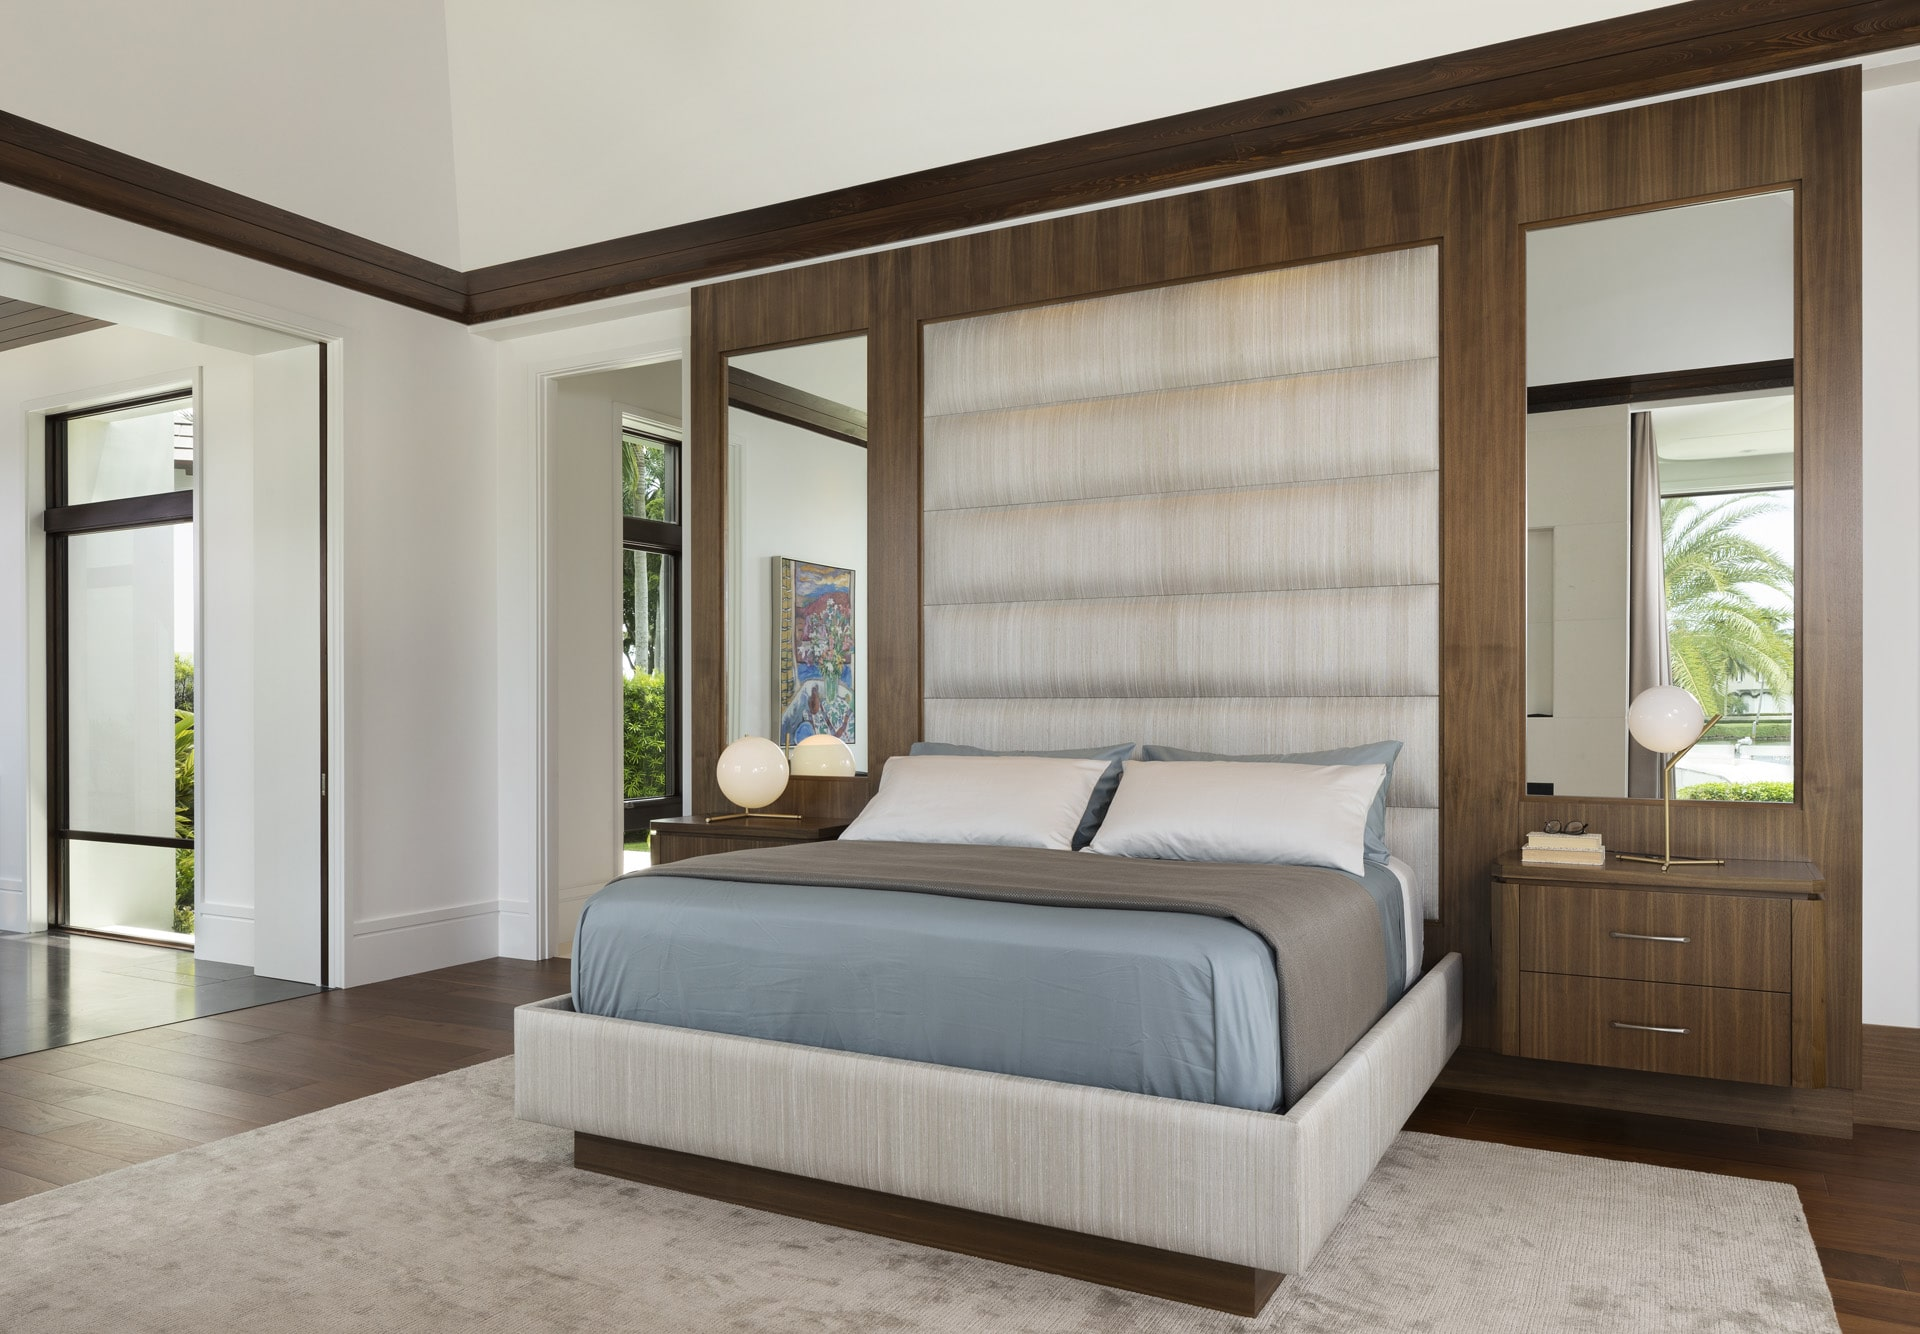 Port Royal Home - Custom Designed Bed Wall